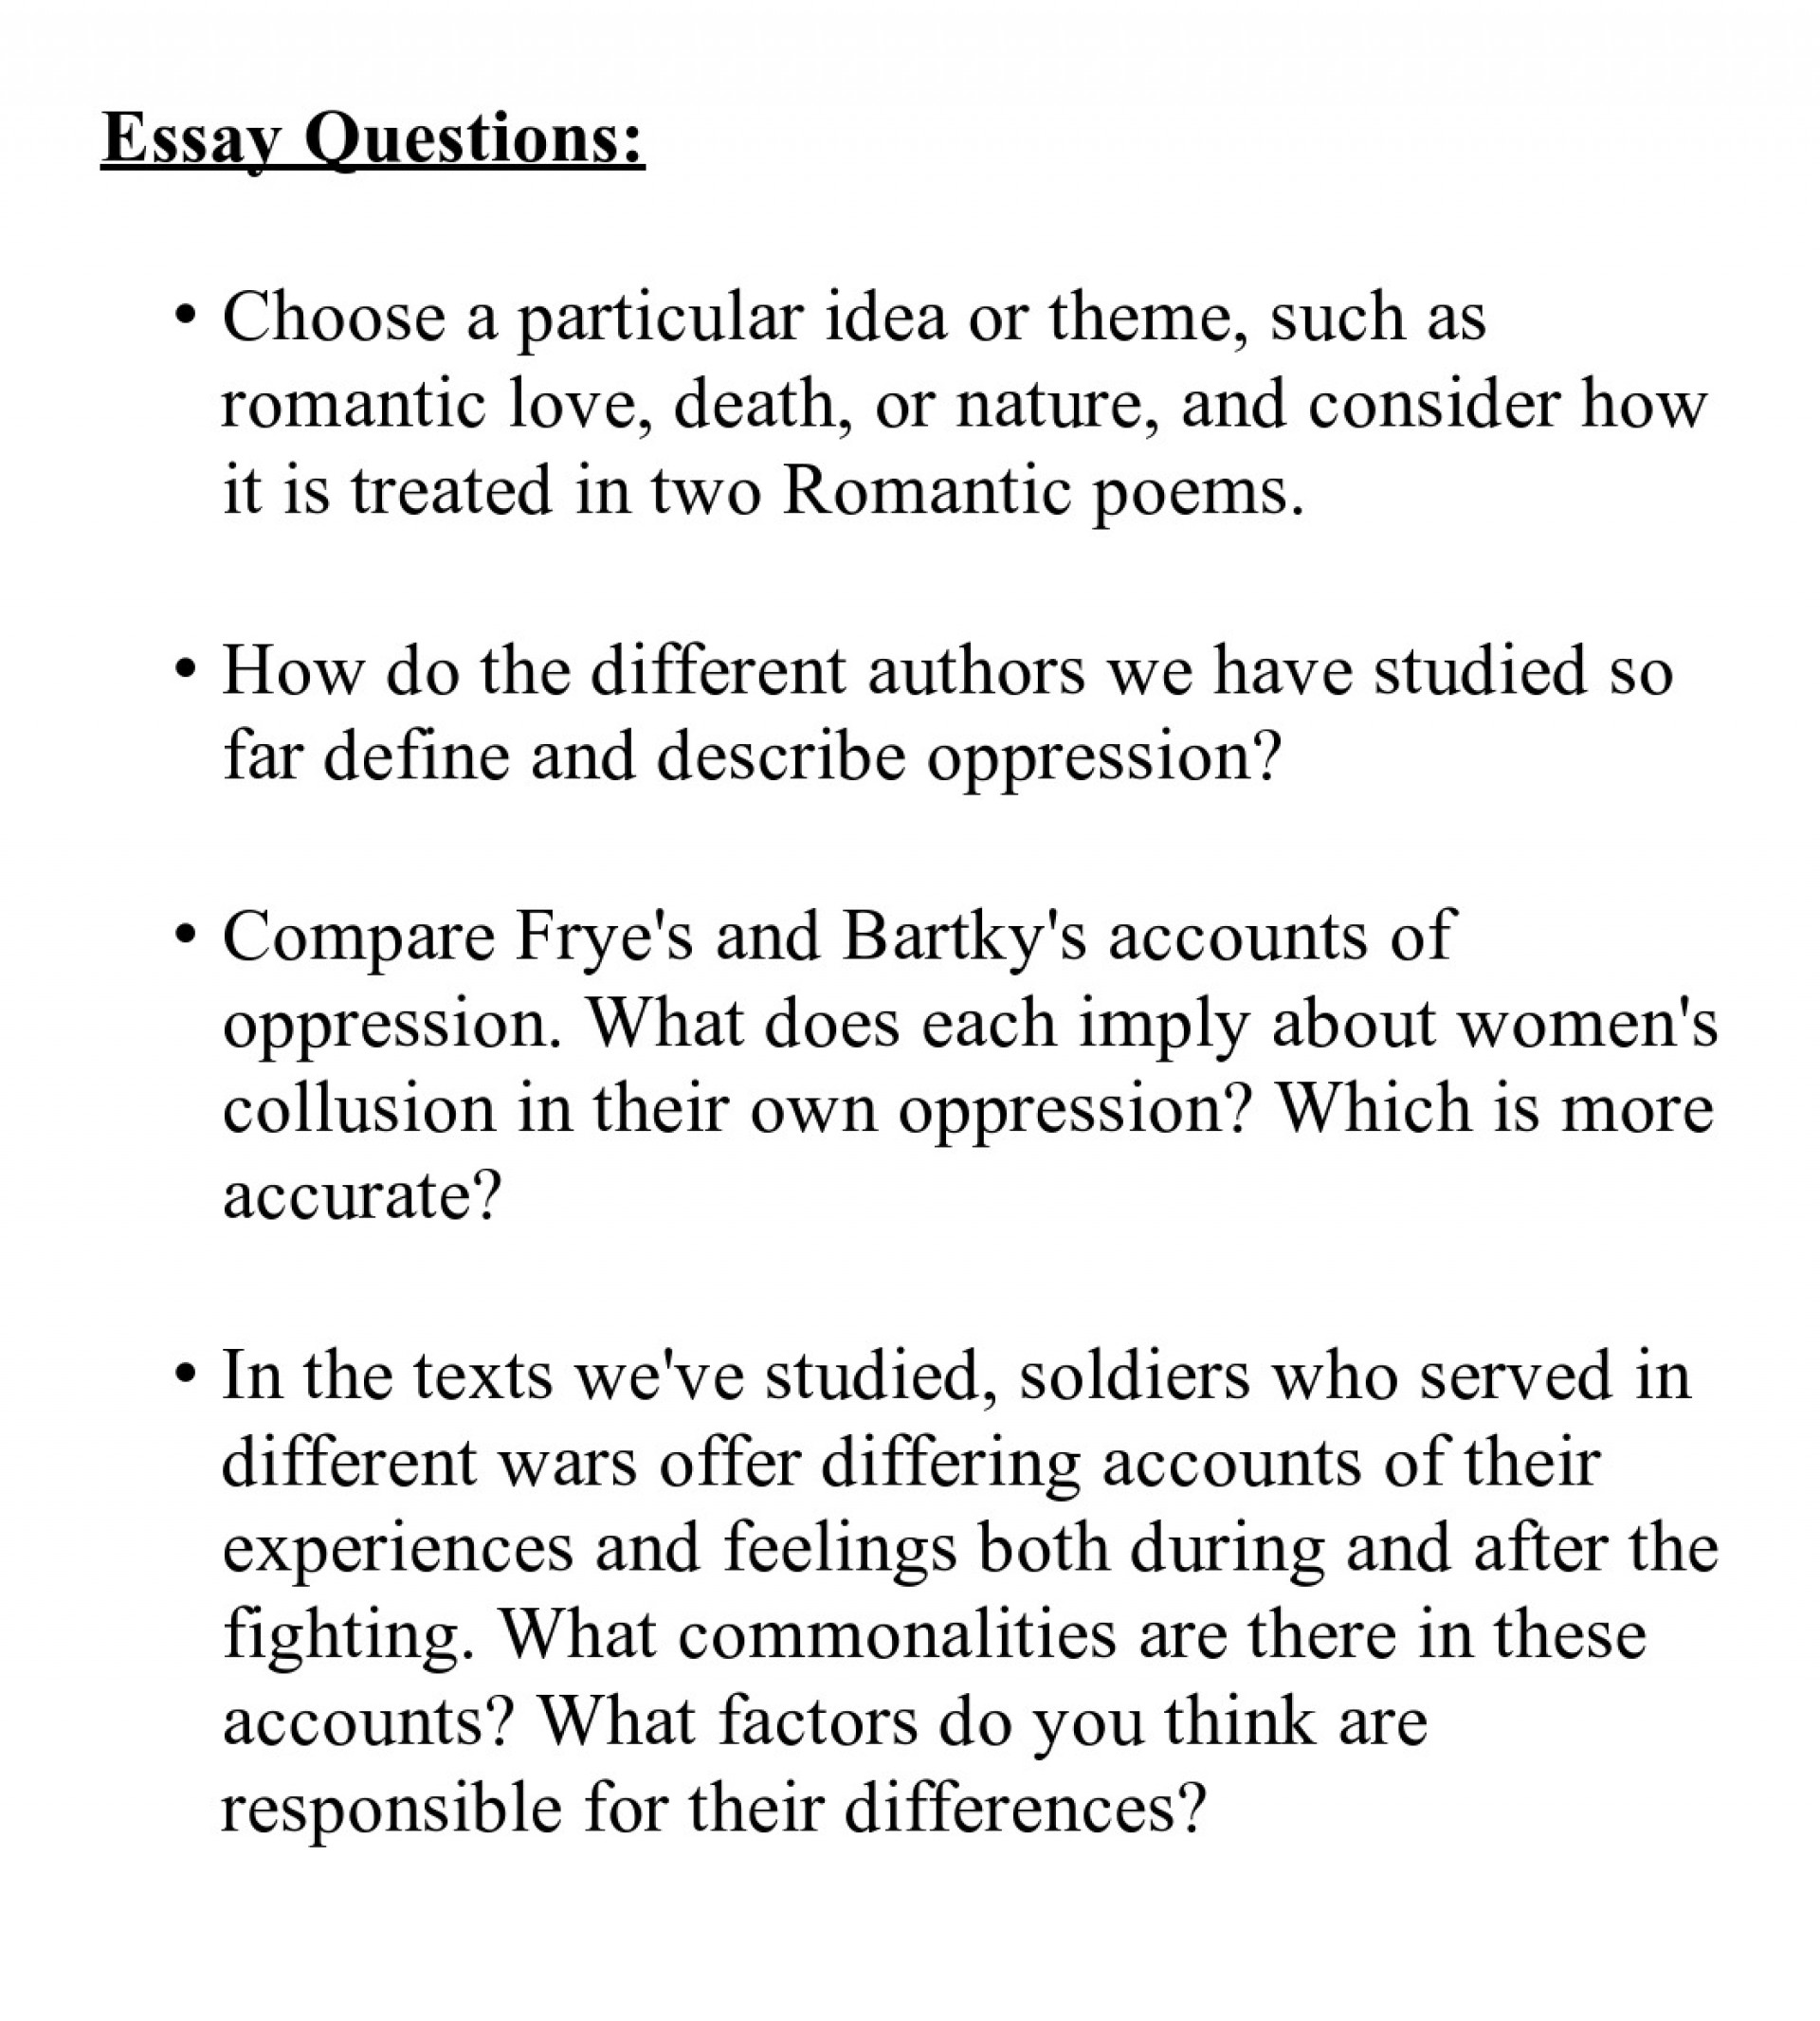 007 How To Write Short Essay Questions Surprising A Response Answer Question In Apa Format 1920